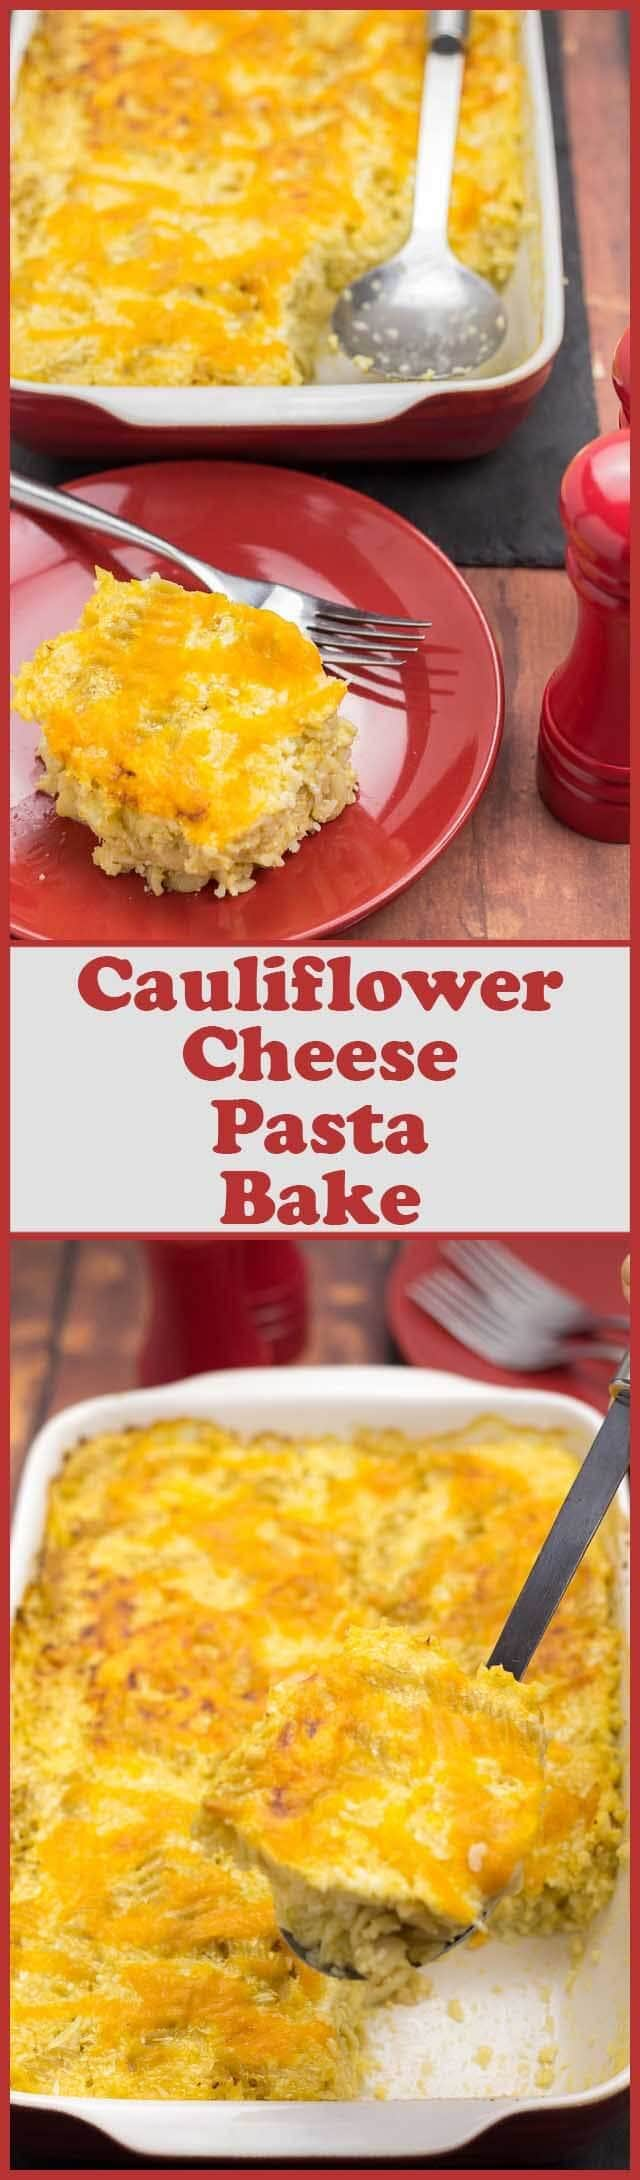 This easy cauliflower cheese pasta bake has all the flavours of a classic cauliflower cheese recipe. However, the addition of whole wheat pasta and a reduced fat cheese sauce make it an altogether much more healthier and filling family dinner option.